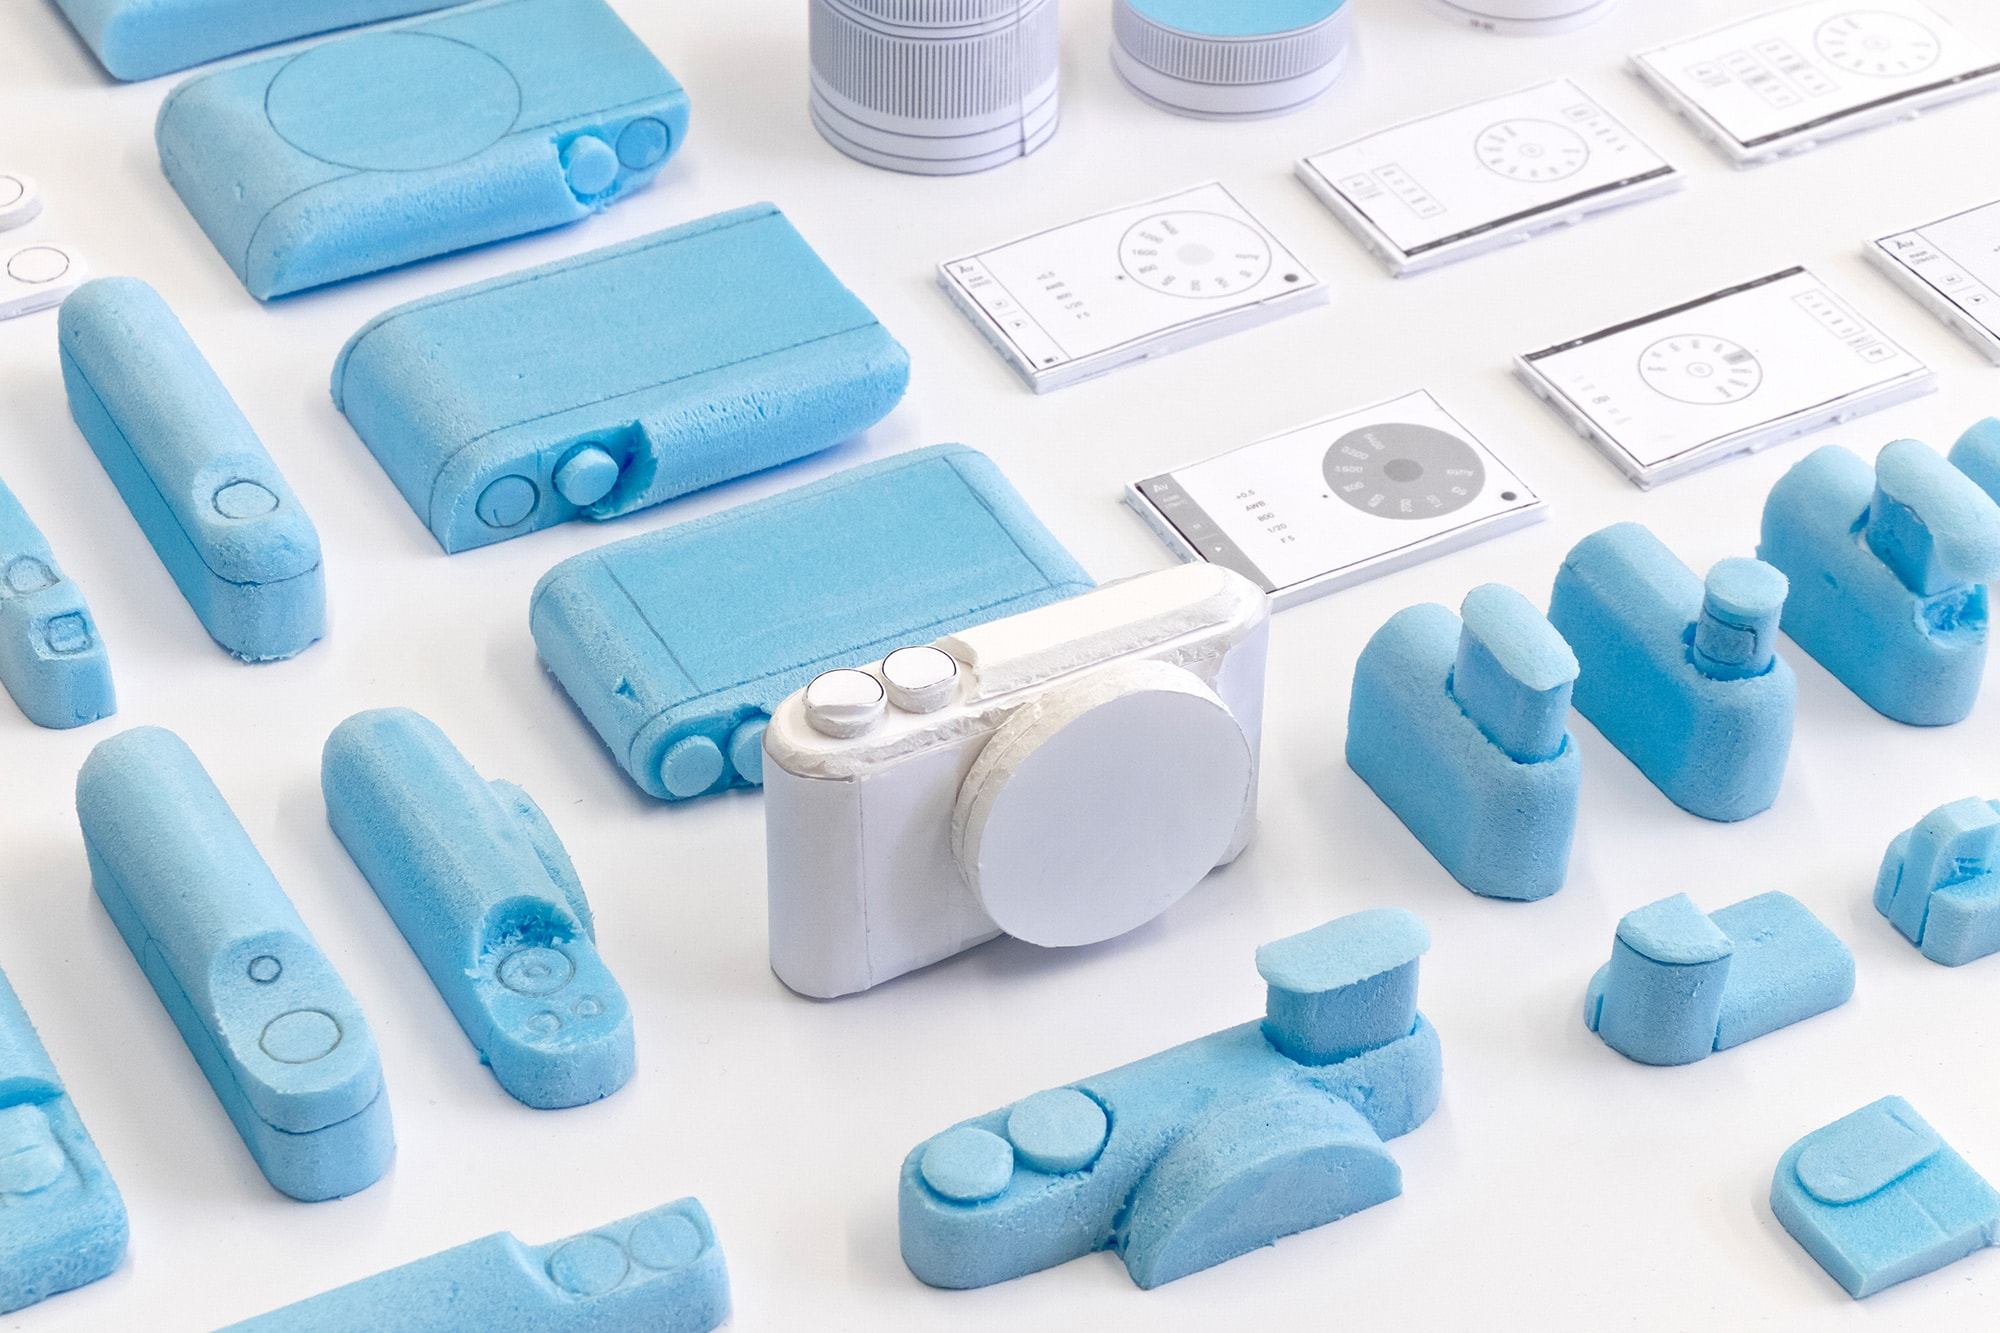 Prototypes of the Segment camera. Iterations of different components are shown in blue foam with a complete white foam model in the centre.